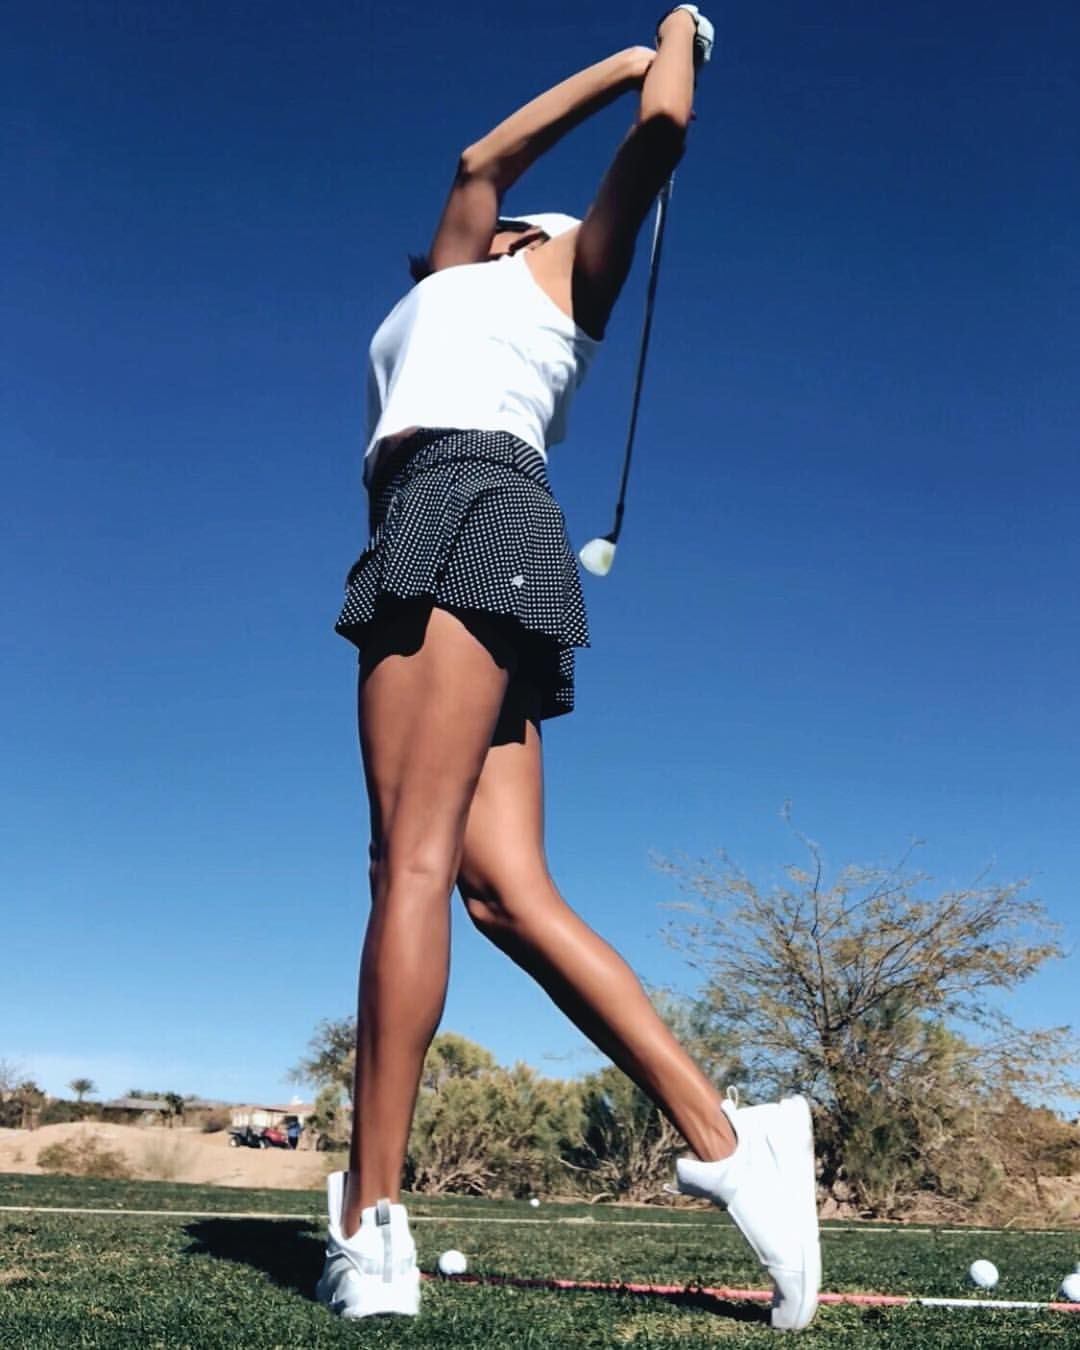 Pin on Ultimate Golf Partners